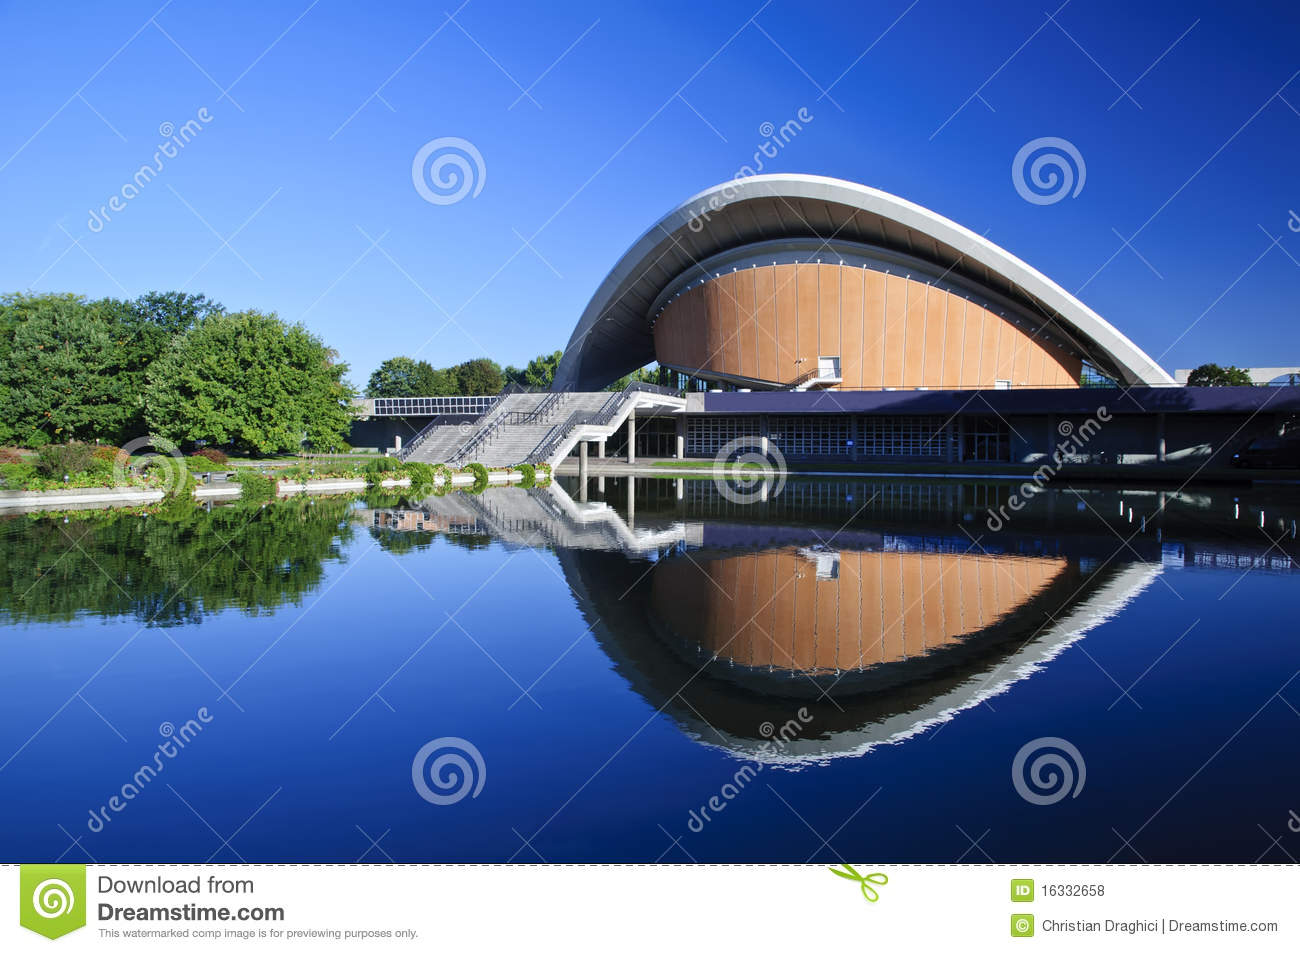 House of world cultures in Berlin